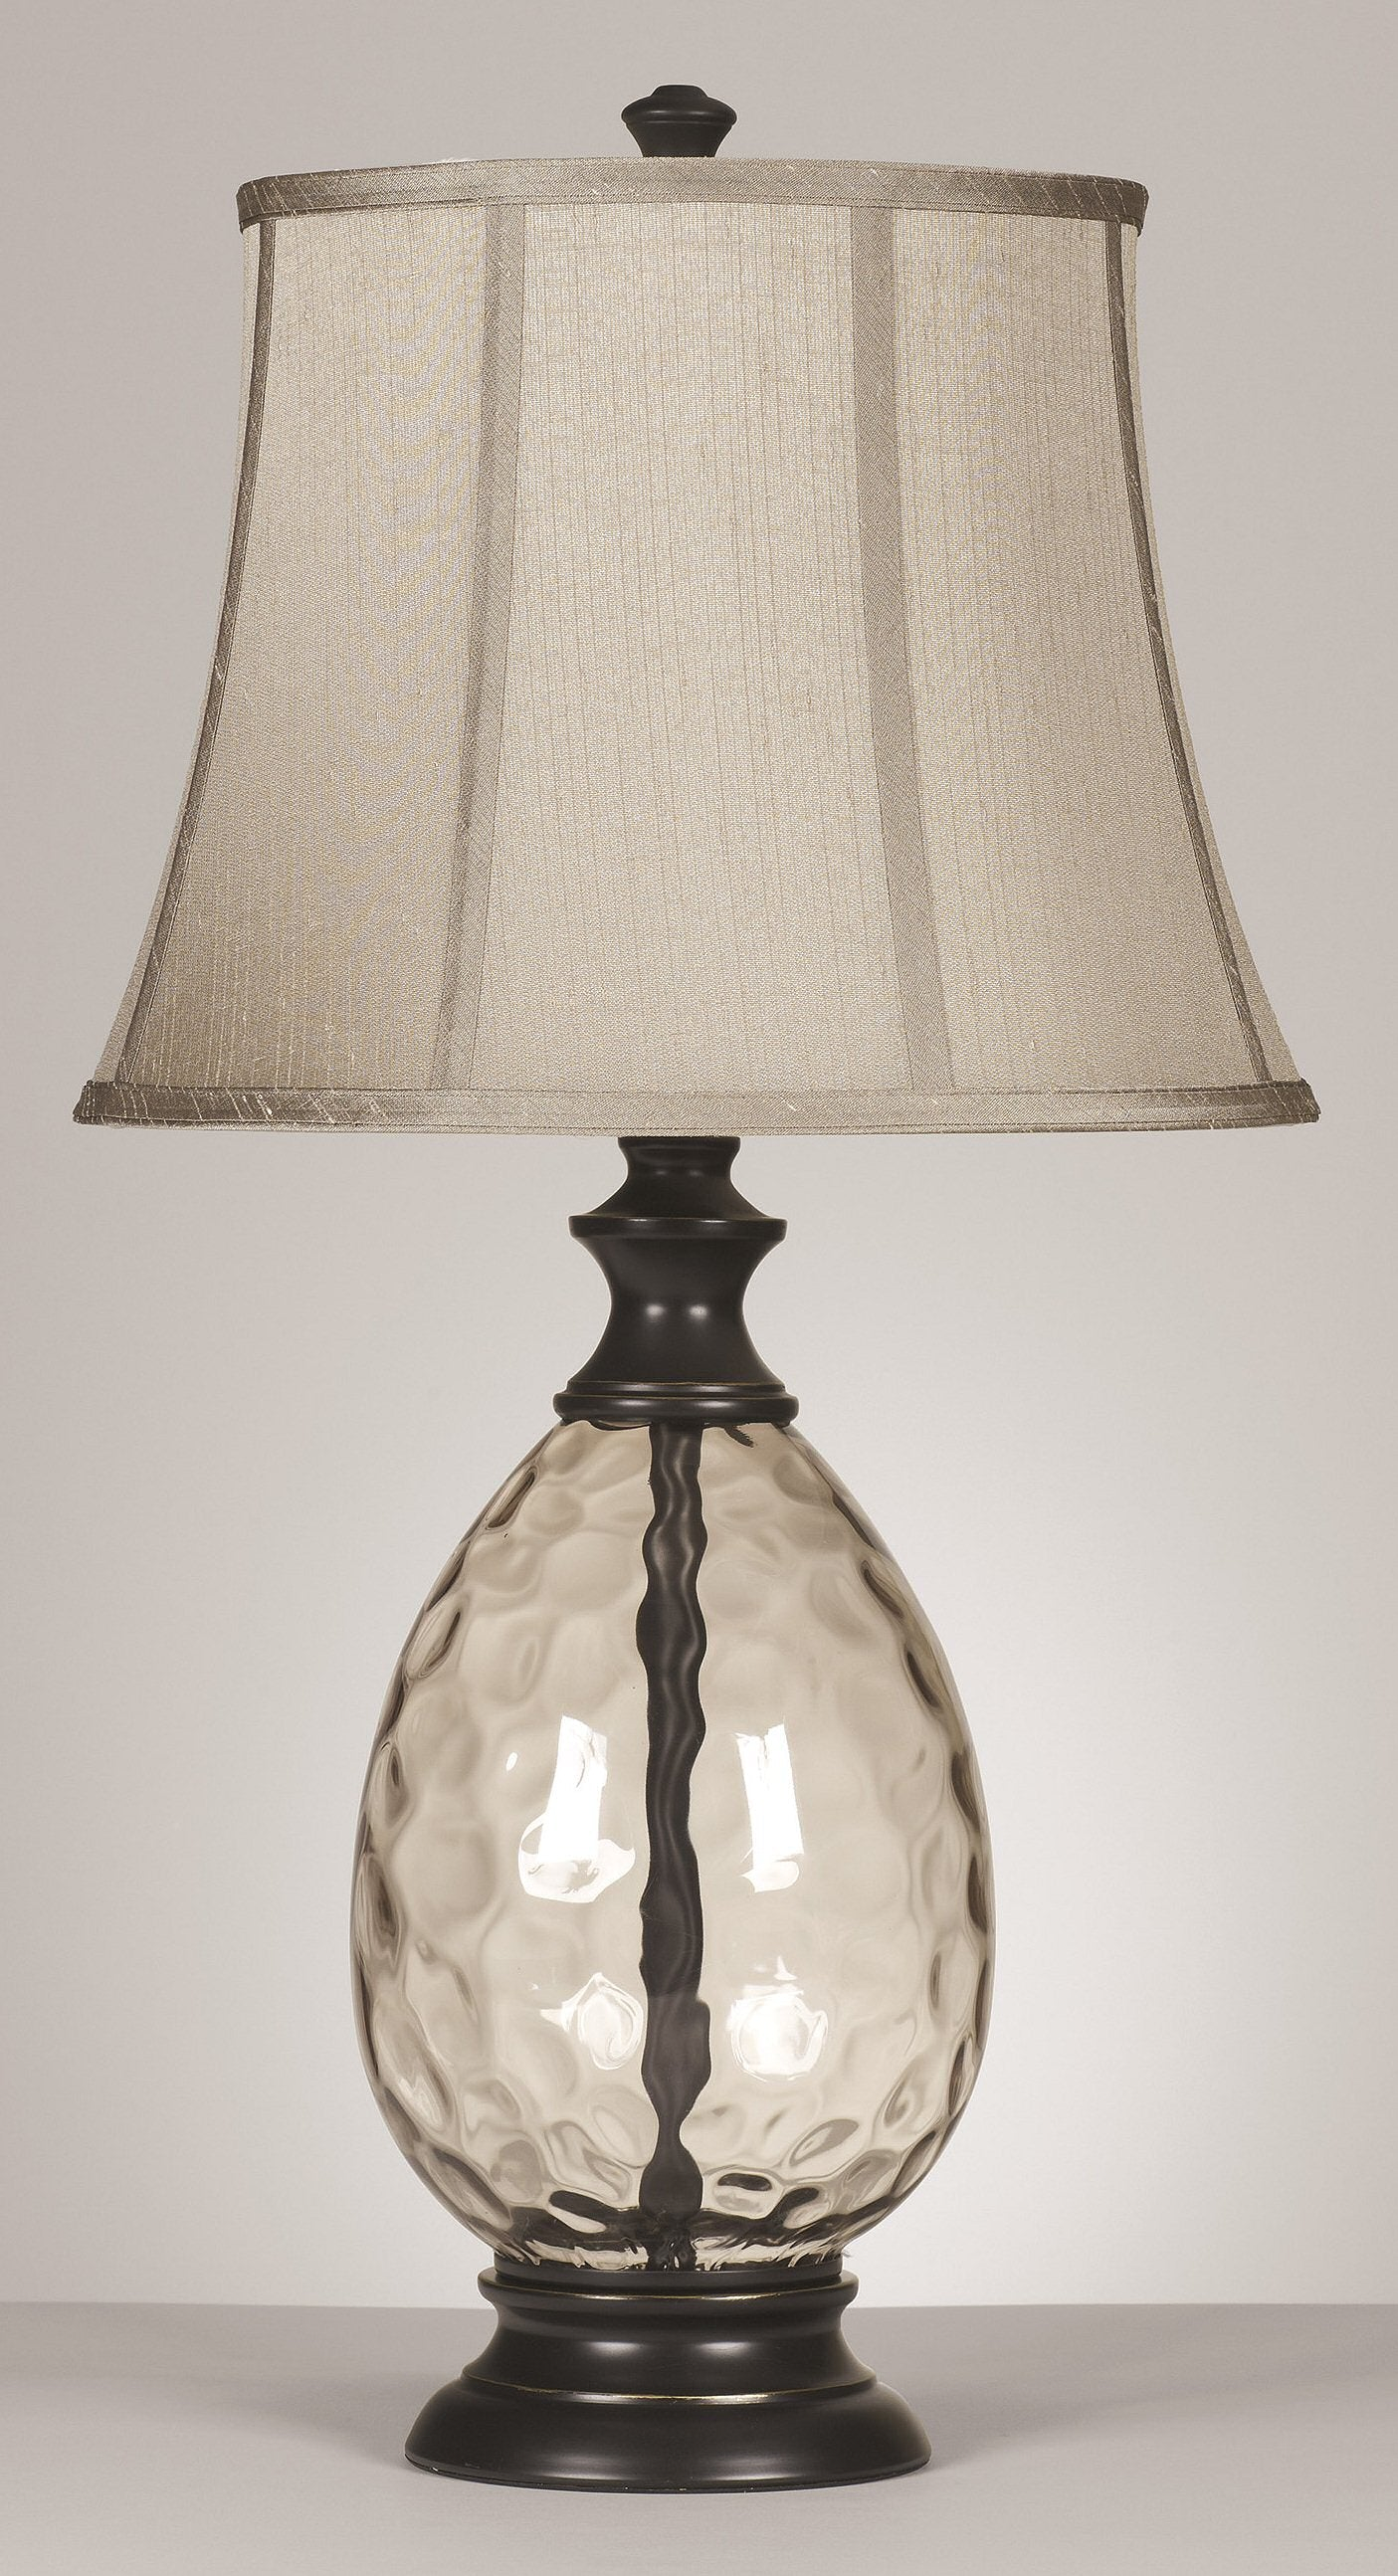 Table Lamps You Ll Love For Bedroom Living Room Lampsusa